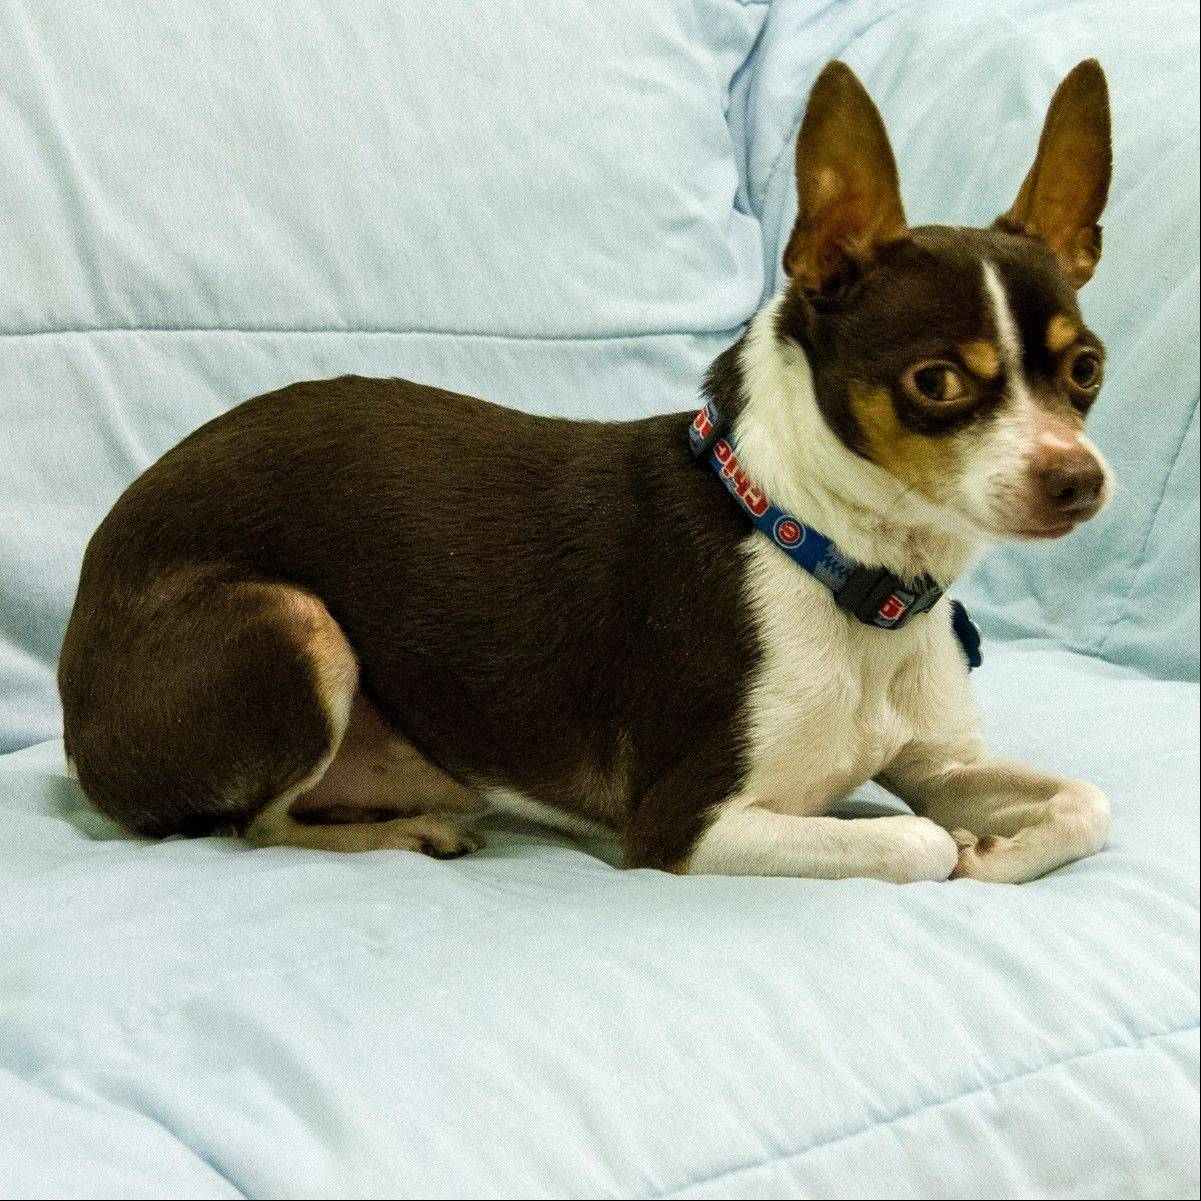 Leroy, a 7-year-old, male Chihuahua, weighs in at 10 pounds. Wouldn't you like to take this cute little guy home?